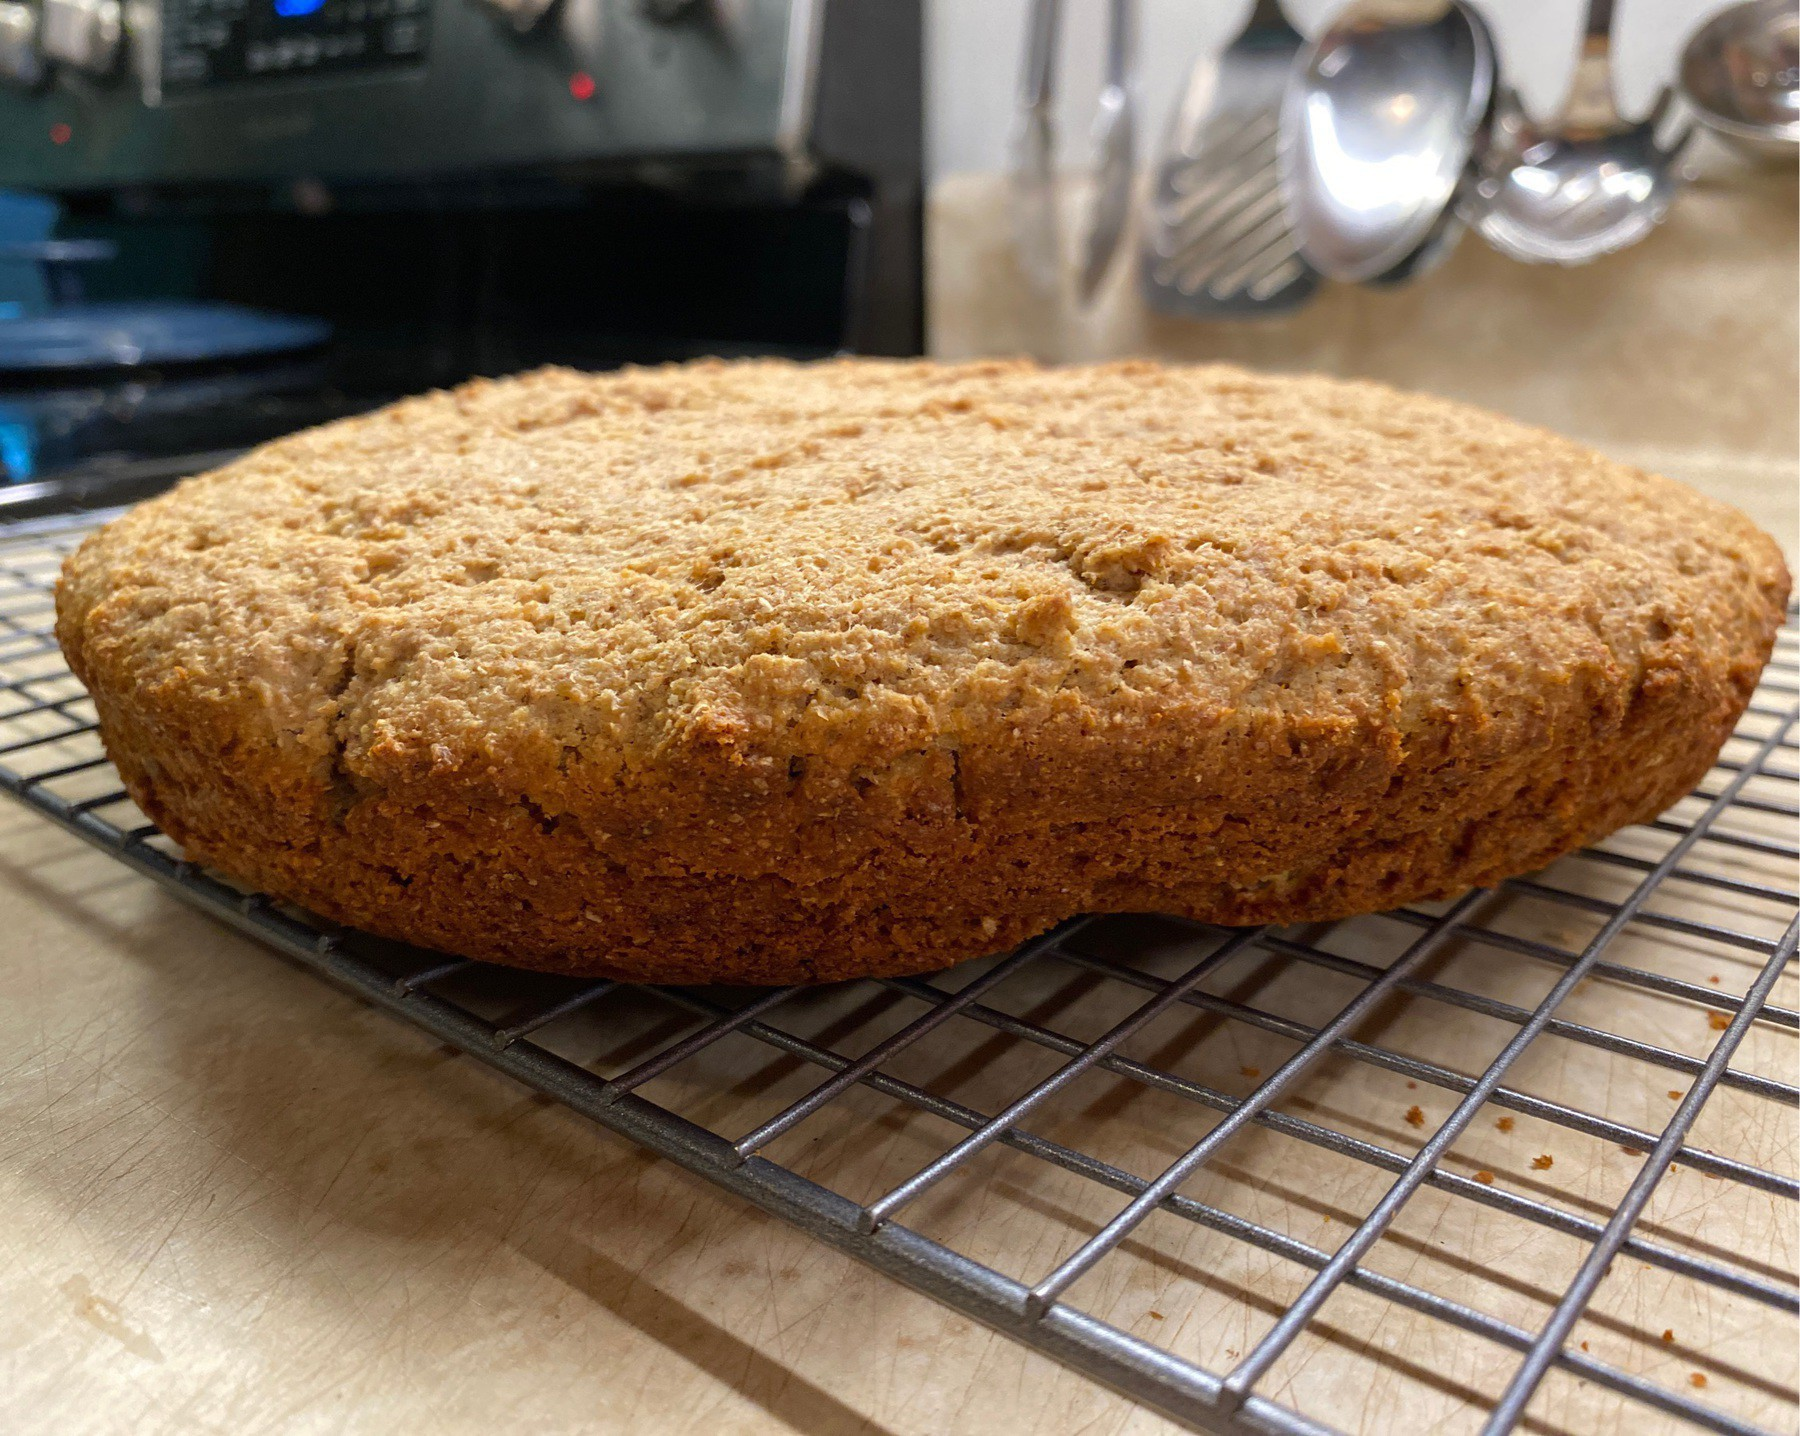 Brown bread cooling on rack.